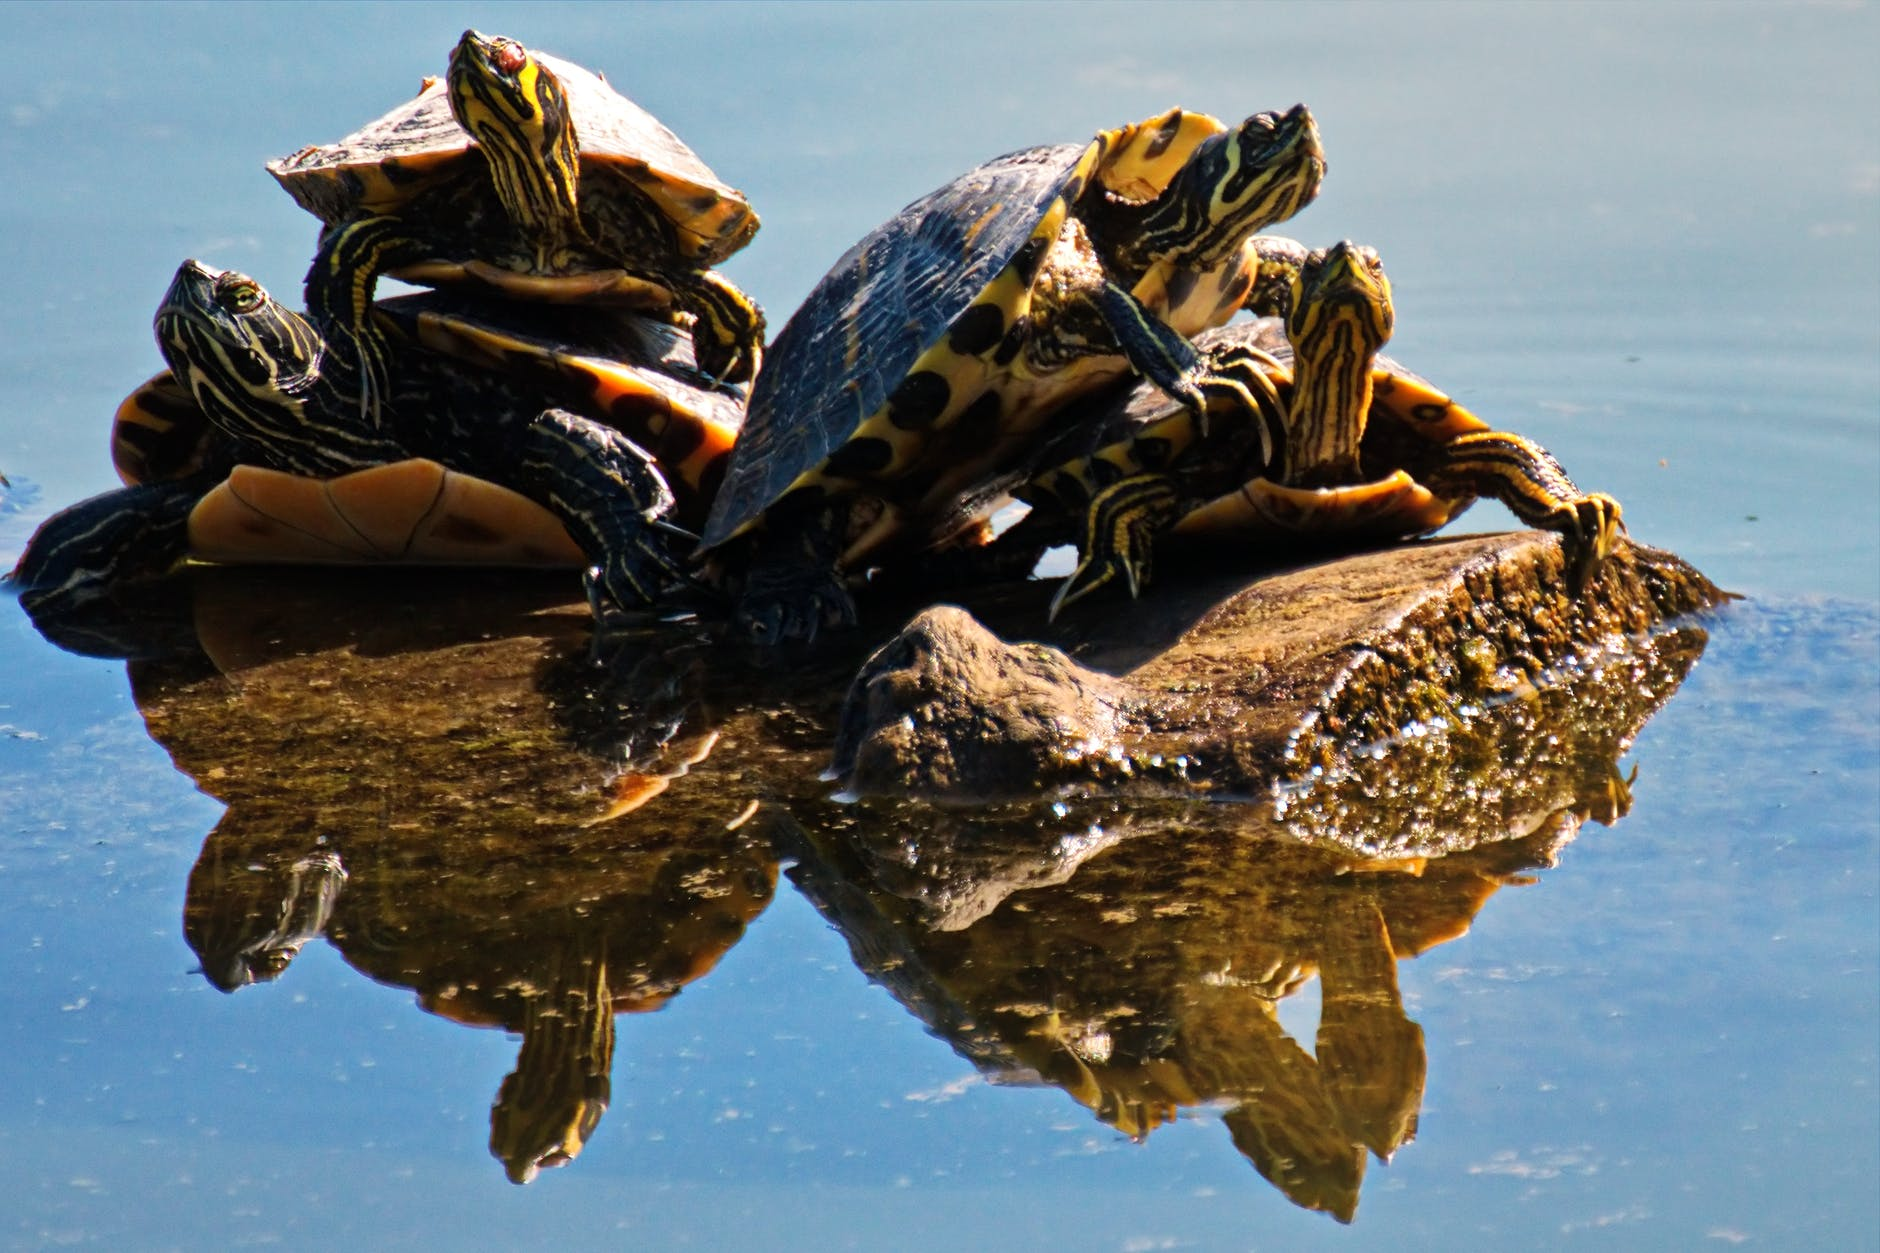 four turtles, protected by the state of Texas